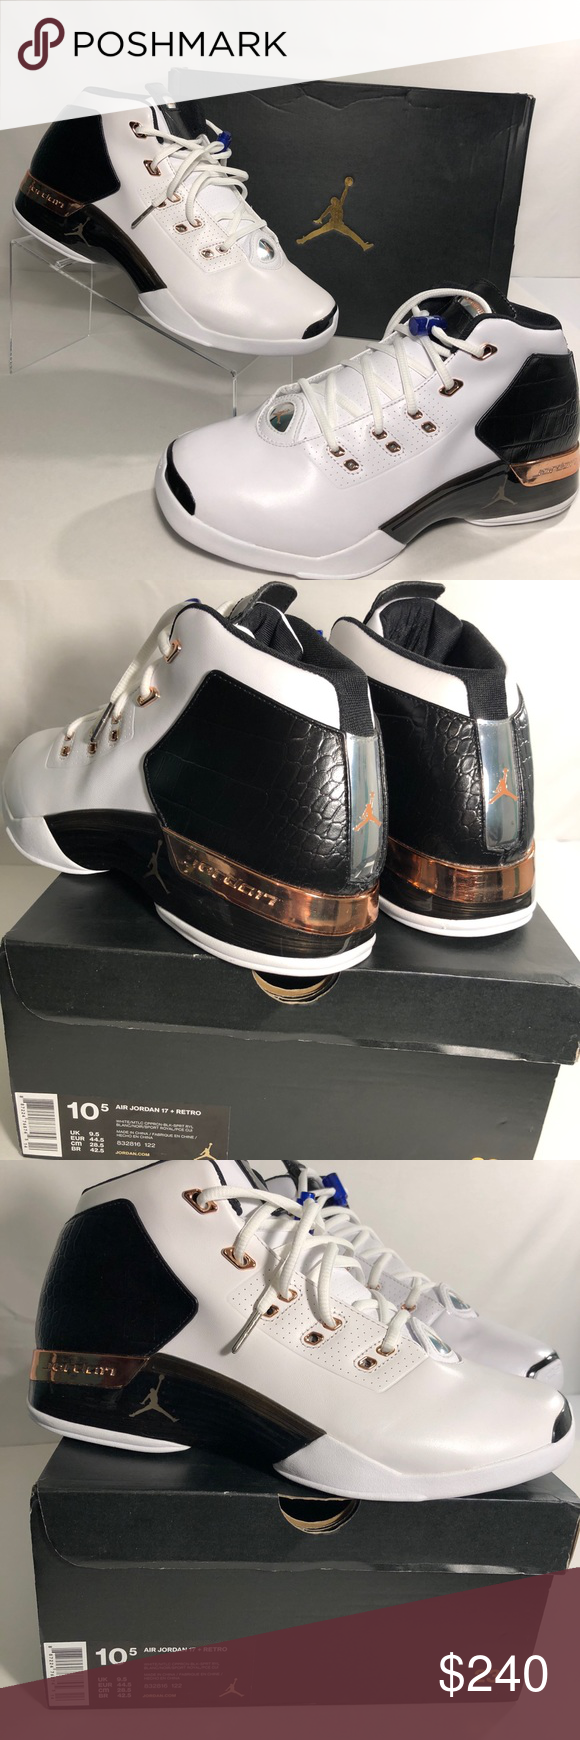 fd0c0798758 NIKE AIR JORDAN 17 XVII RETRO COPPER Size 10.5 (DS) NIKE AIR JORDAN ...